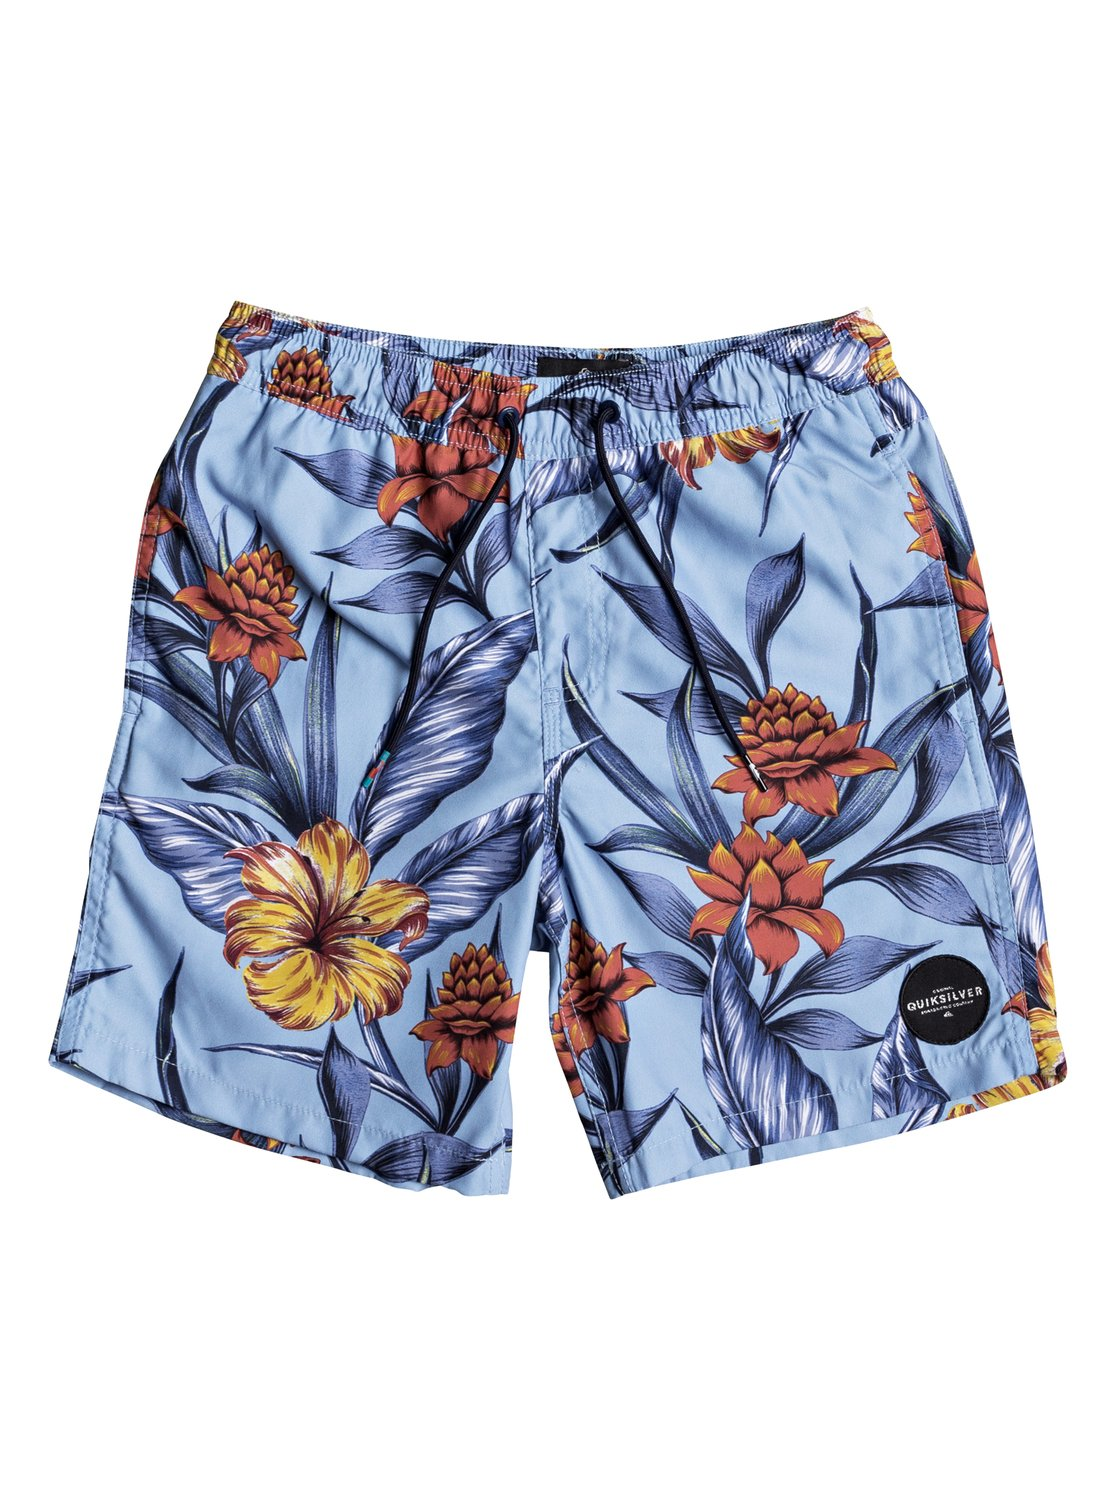 Purchase Cheap Price Outlet Pay With Visa QS Volley Pua Volley 15 - SWIMWEAR - Swimming trunks Quiksilver Original Cheap Online Store For Sale jCfwPk8